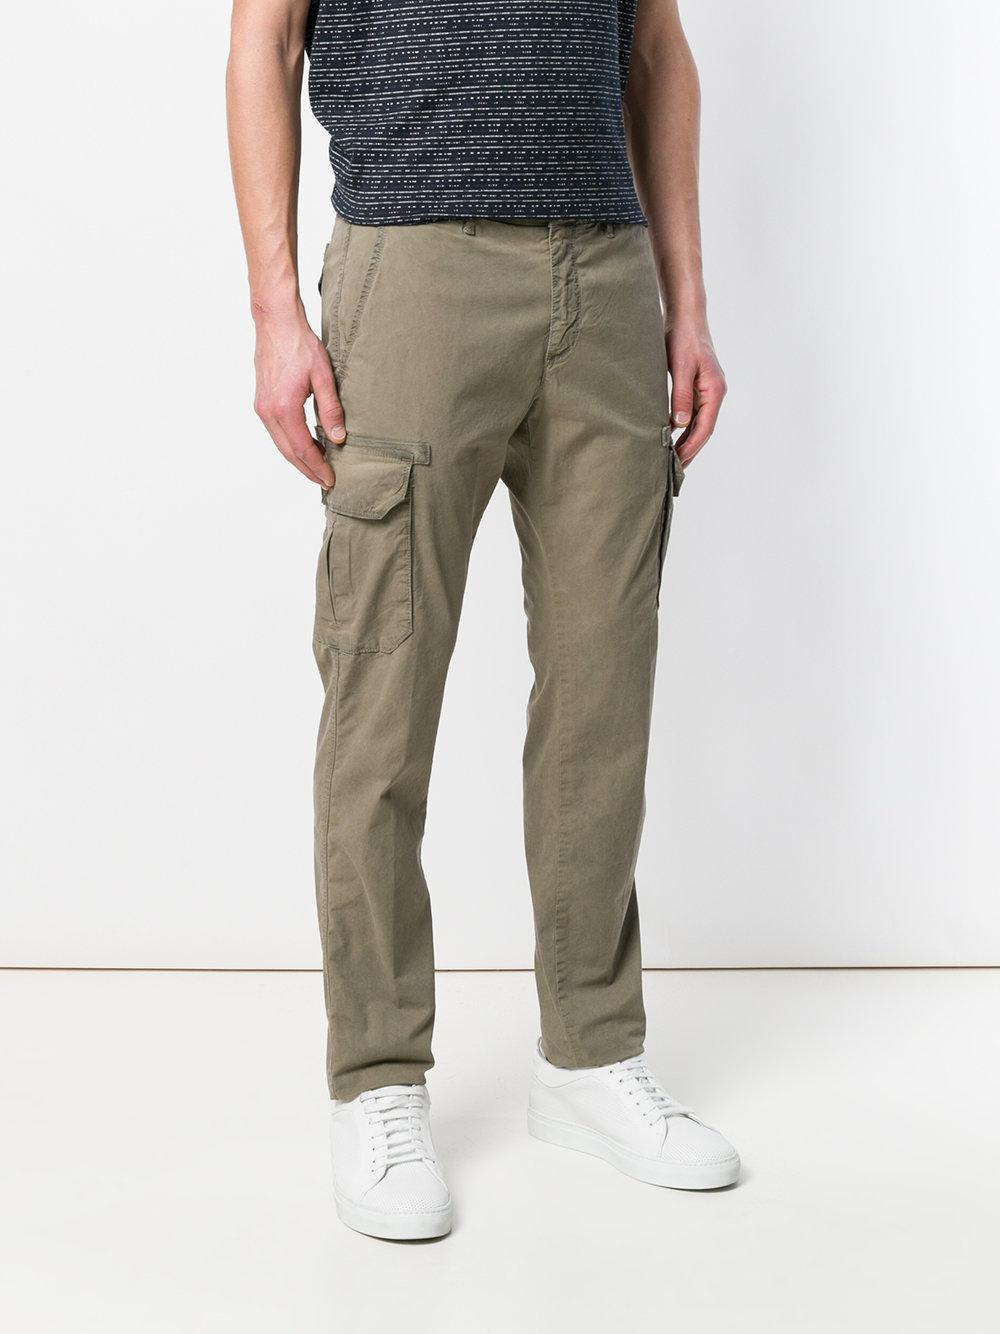 Jeckerson Cotton Slim-fit Chino Trousers in Green for Men